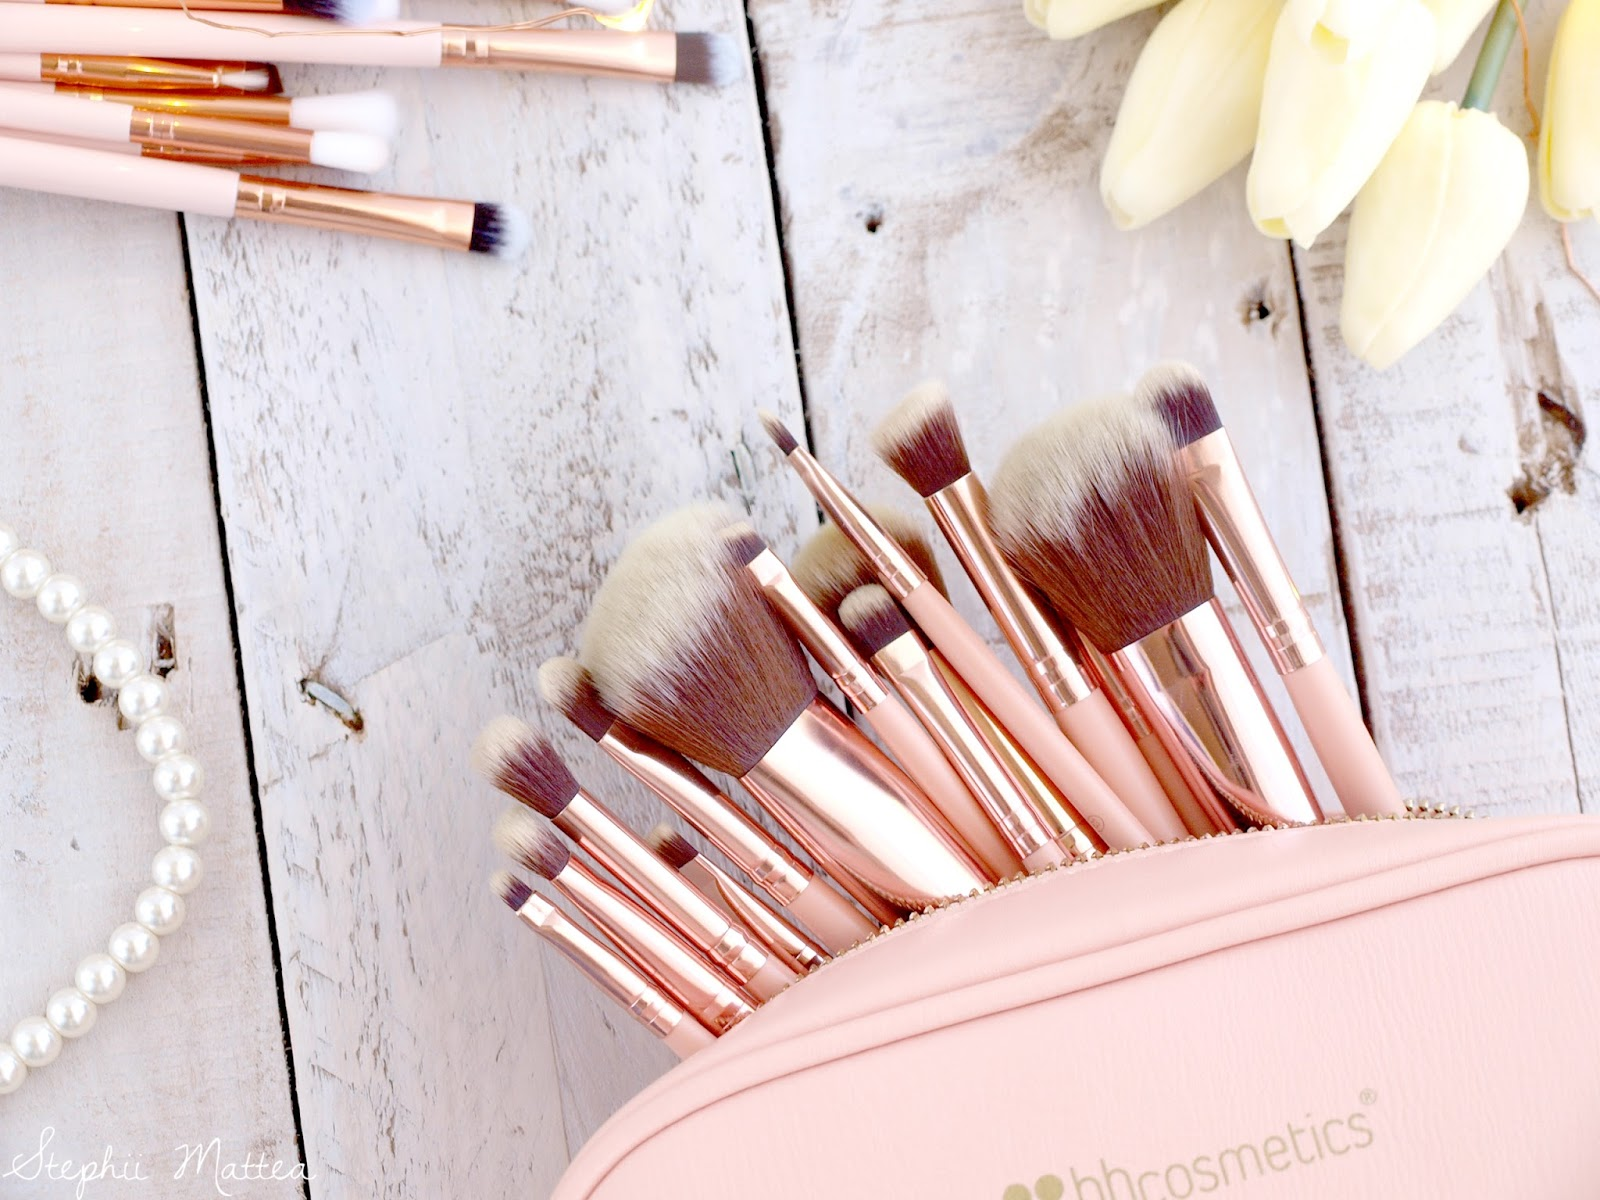 bh cosmetics rose gold brushes review